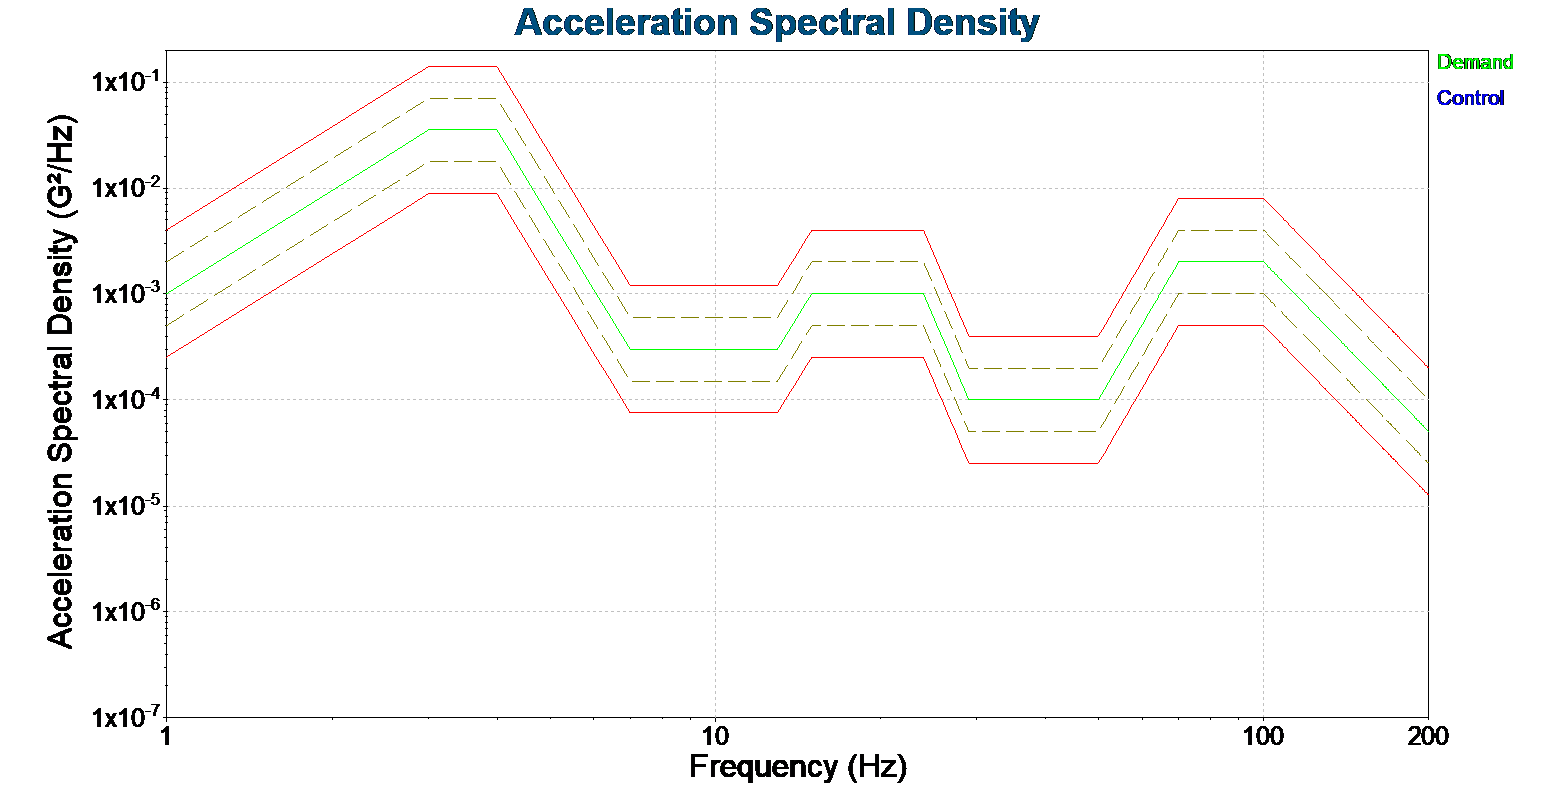 The ISTA 3A Pick-up & Delivery Vehicle Spectrum test profile